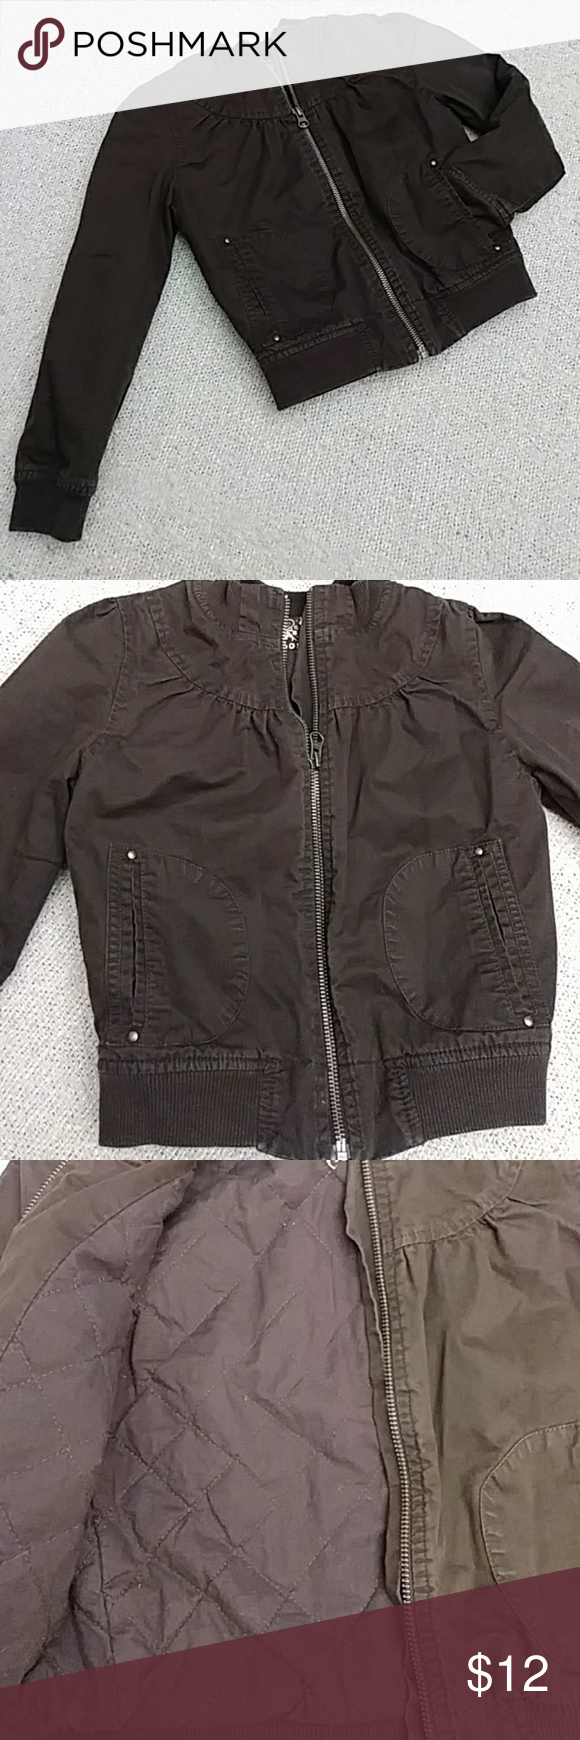 Girls Brown Quilted Bomber Jacket Great Condition Old Navy Warm Brown Quilted Bomber Jacket 100 Cotton S Quilted Bomber Jacket Quilted Bomber Clothes Design